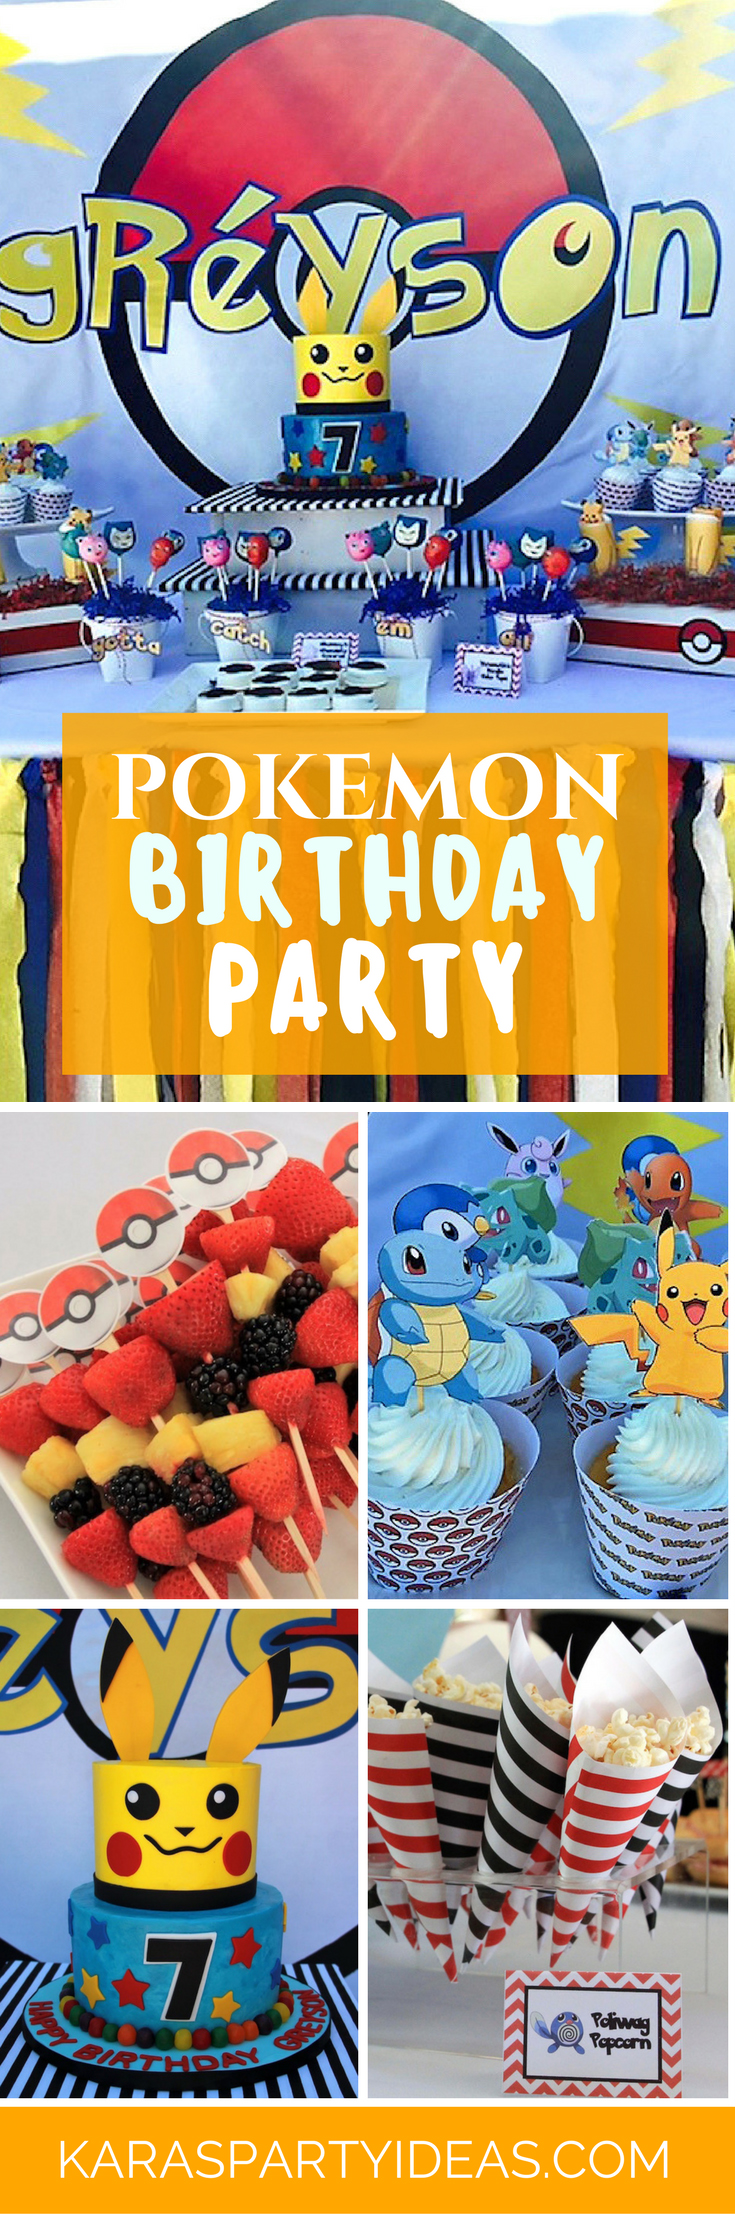 Pokemon Birthday Party via Kara's Party Ideas - KarasPartyIdeas.com (1)